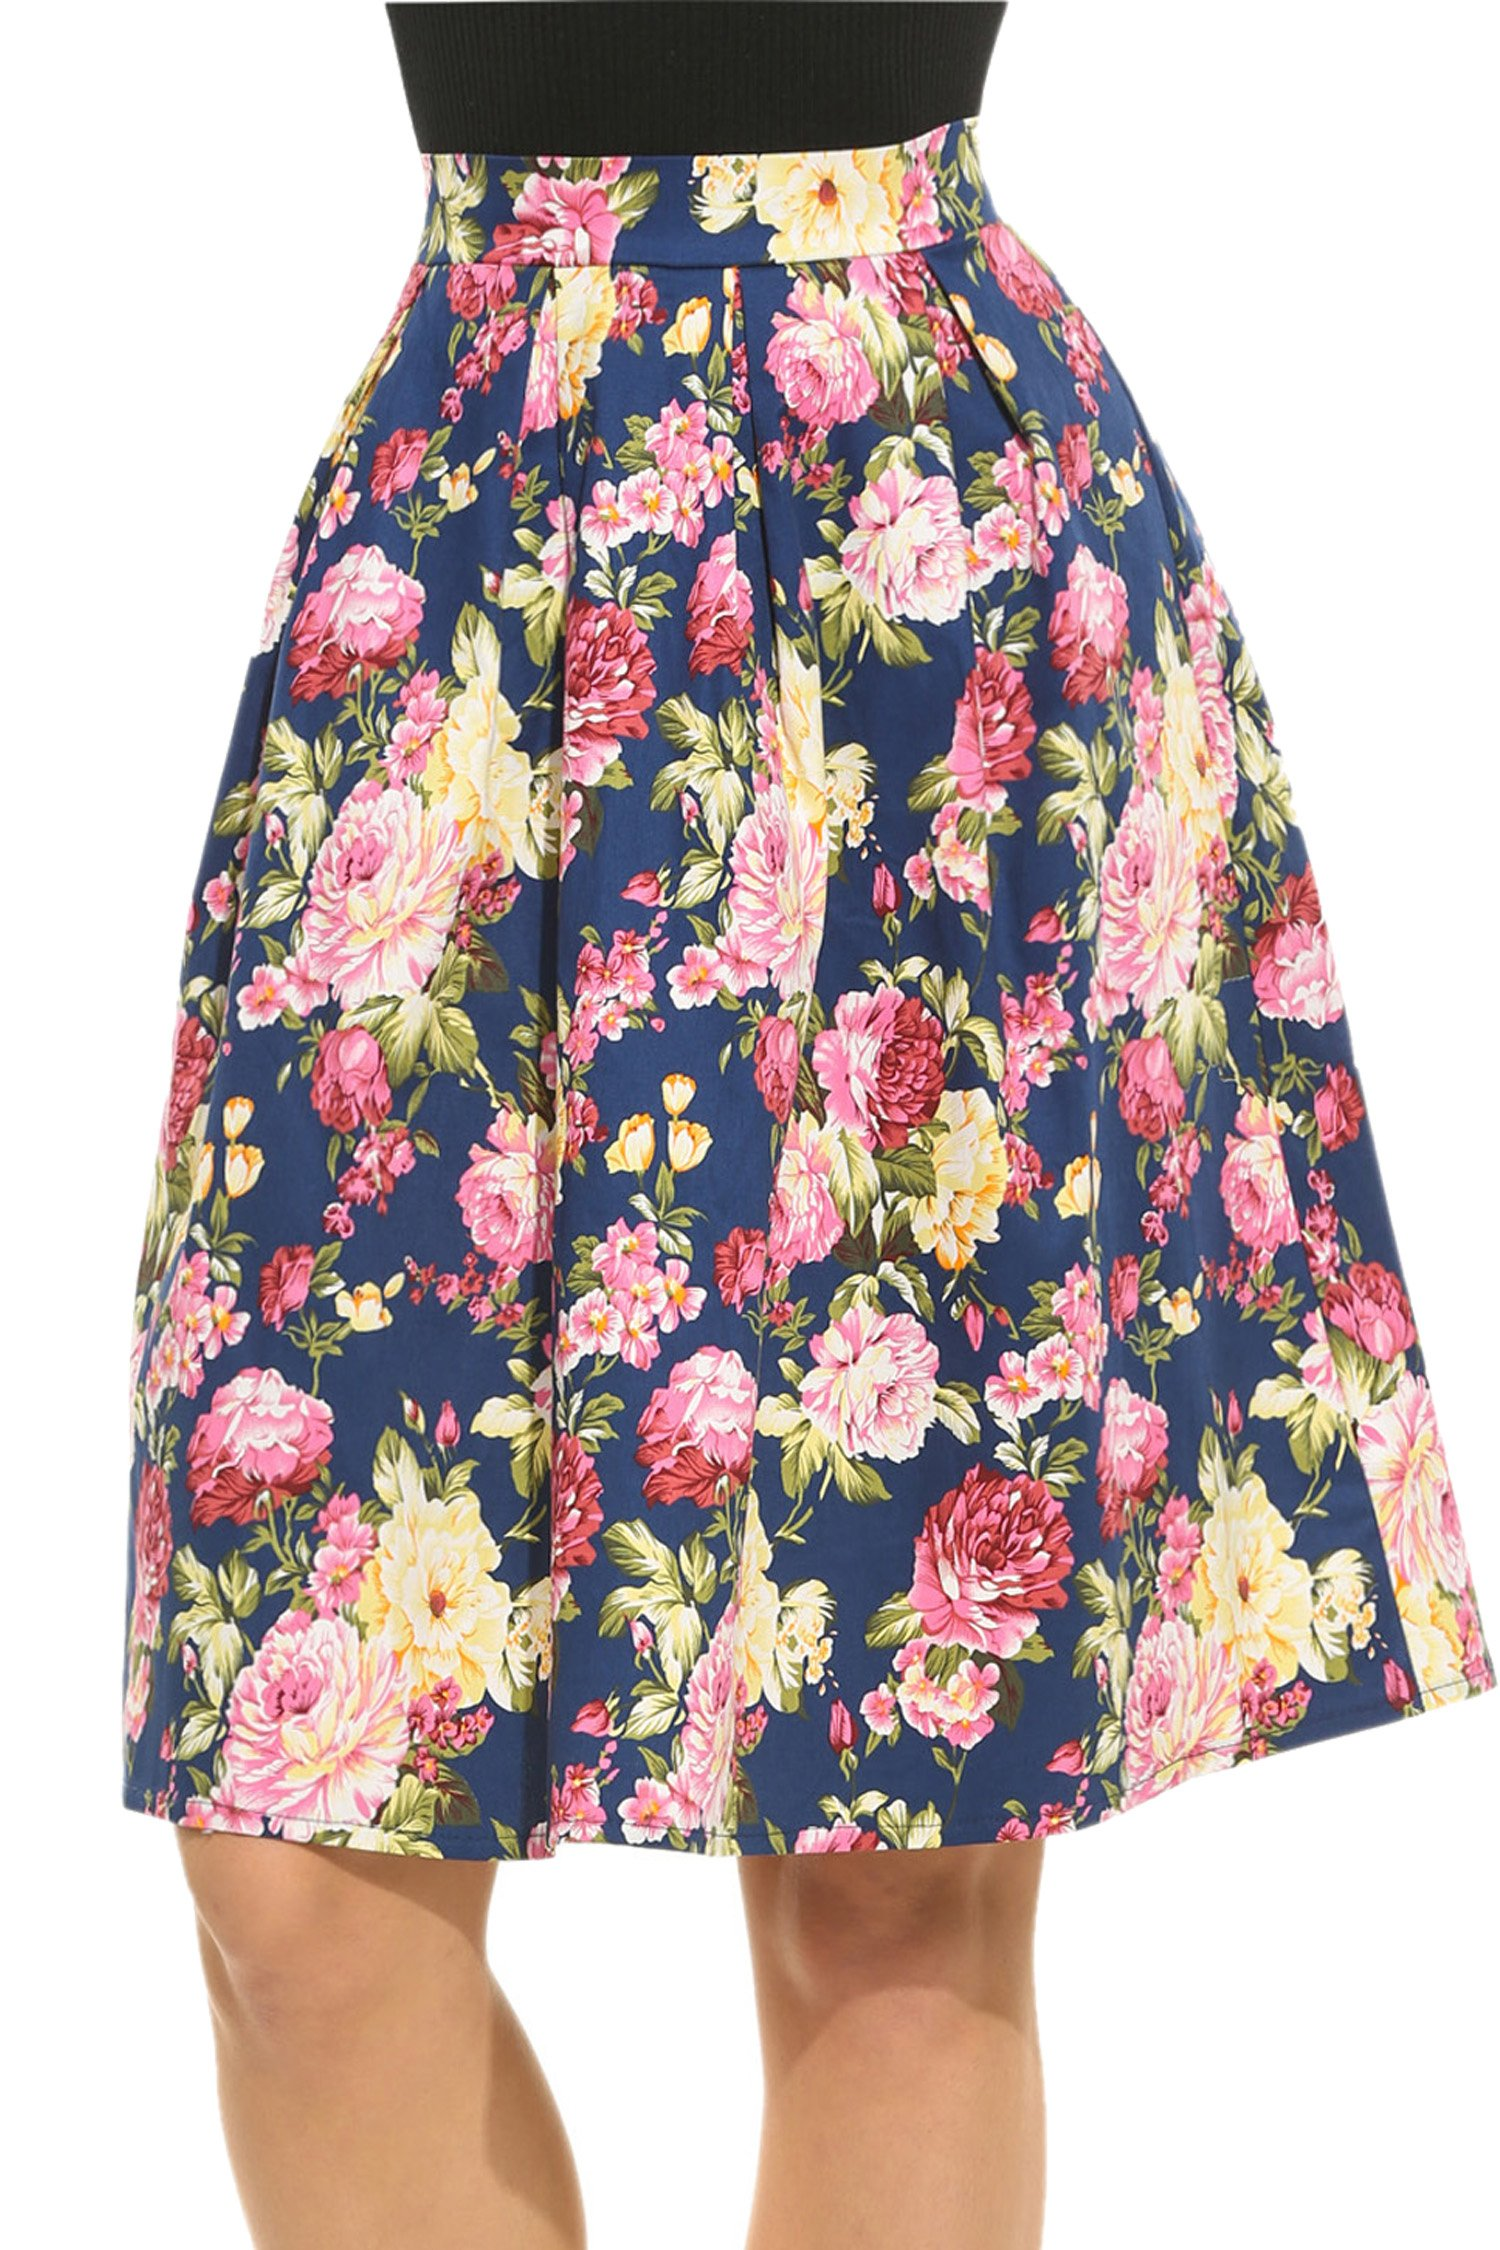 Meaneor Women's High Waisted A line Street Skirt Skater Pleated Full Midi Skirt by Meaneor (Image #1)